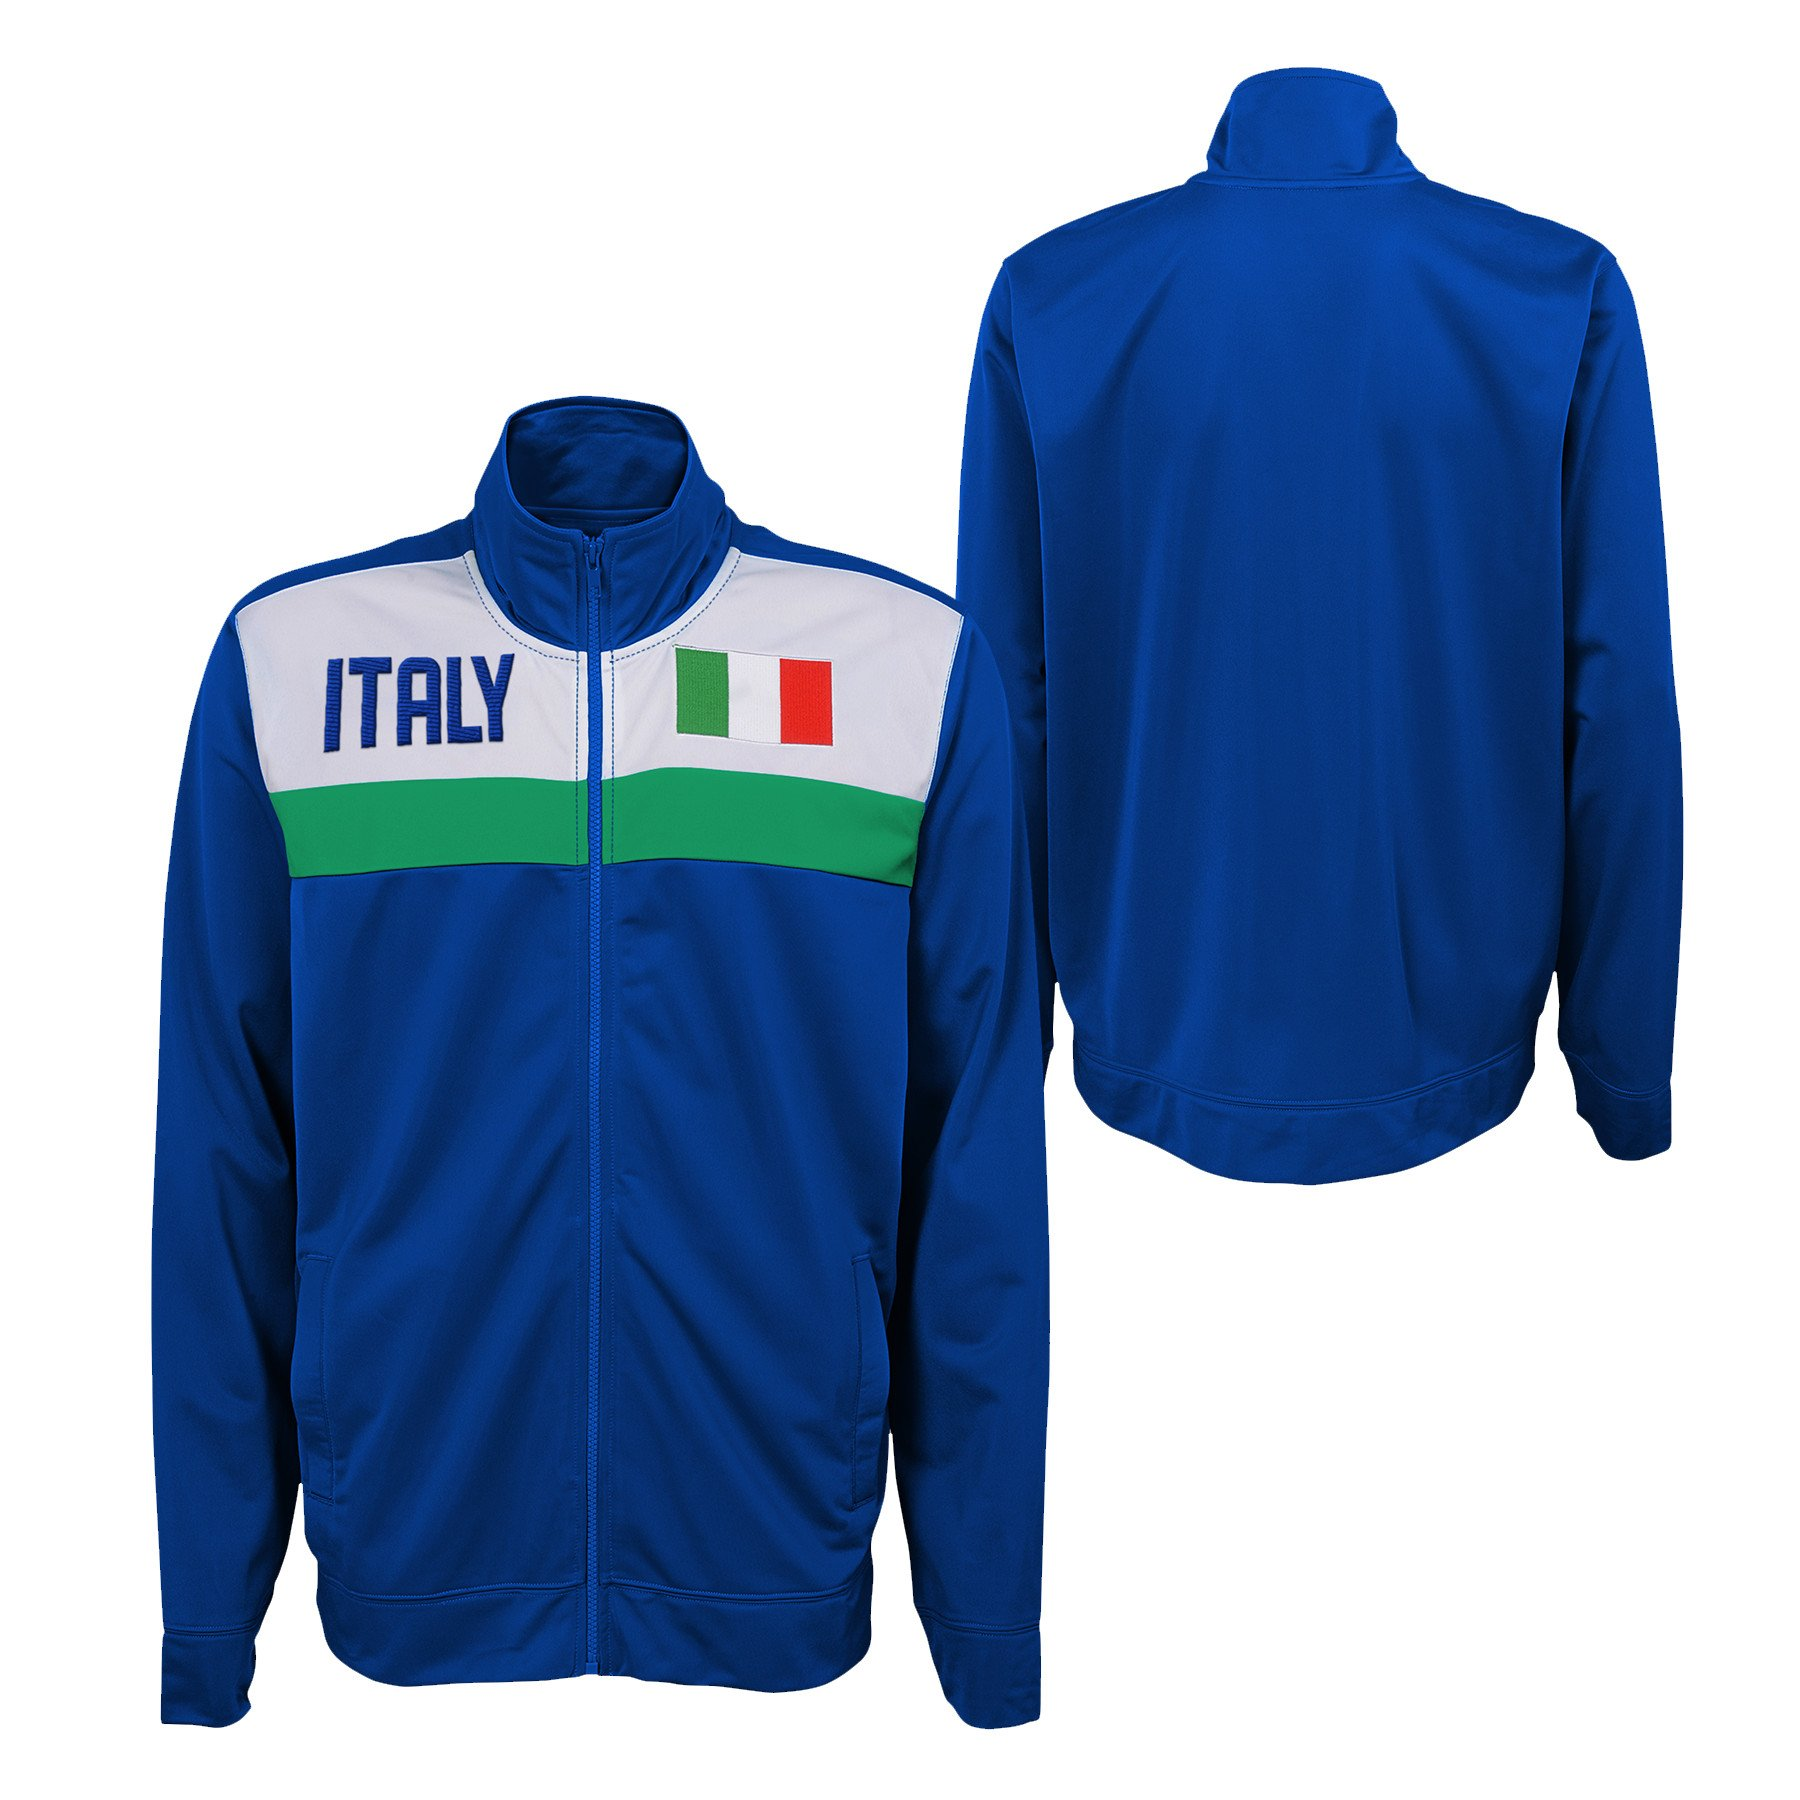 Outerstuff Youth International Soccer Italy Track Jacket Football Italia Embroidered Zip UP - M (10/12)